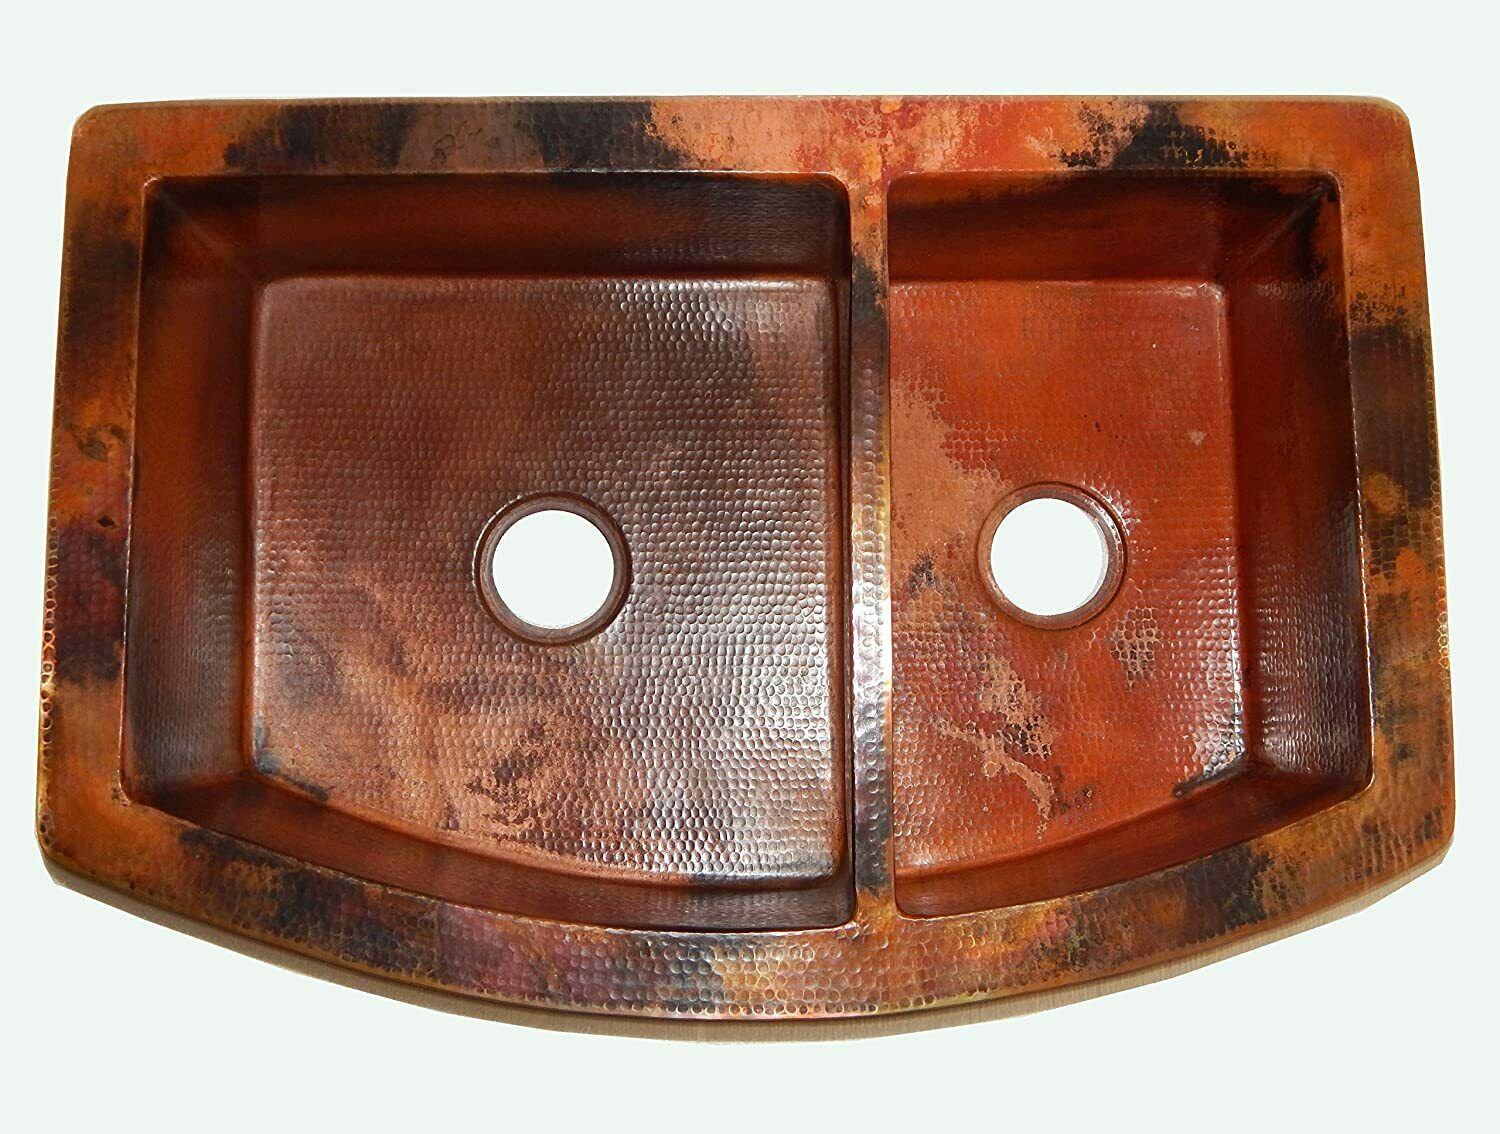 33 Tuscan Series 60 40 Offset Double Bowl Copper Farmhouse Sink For Sale Online Ebay